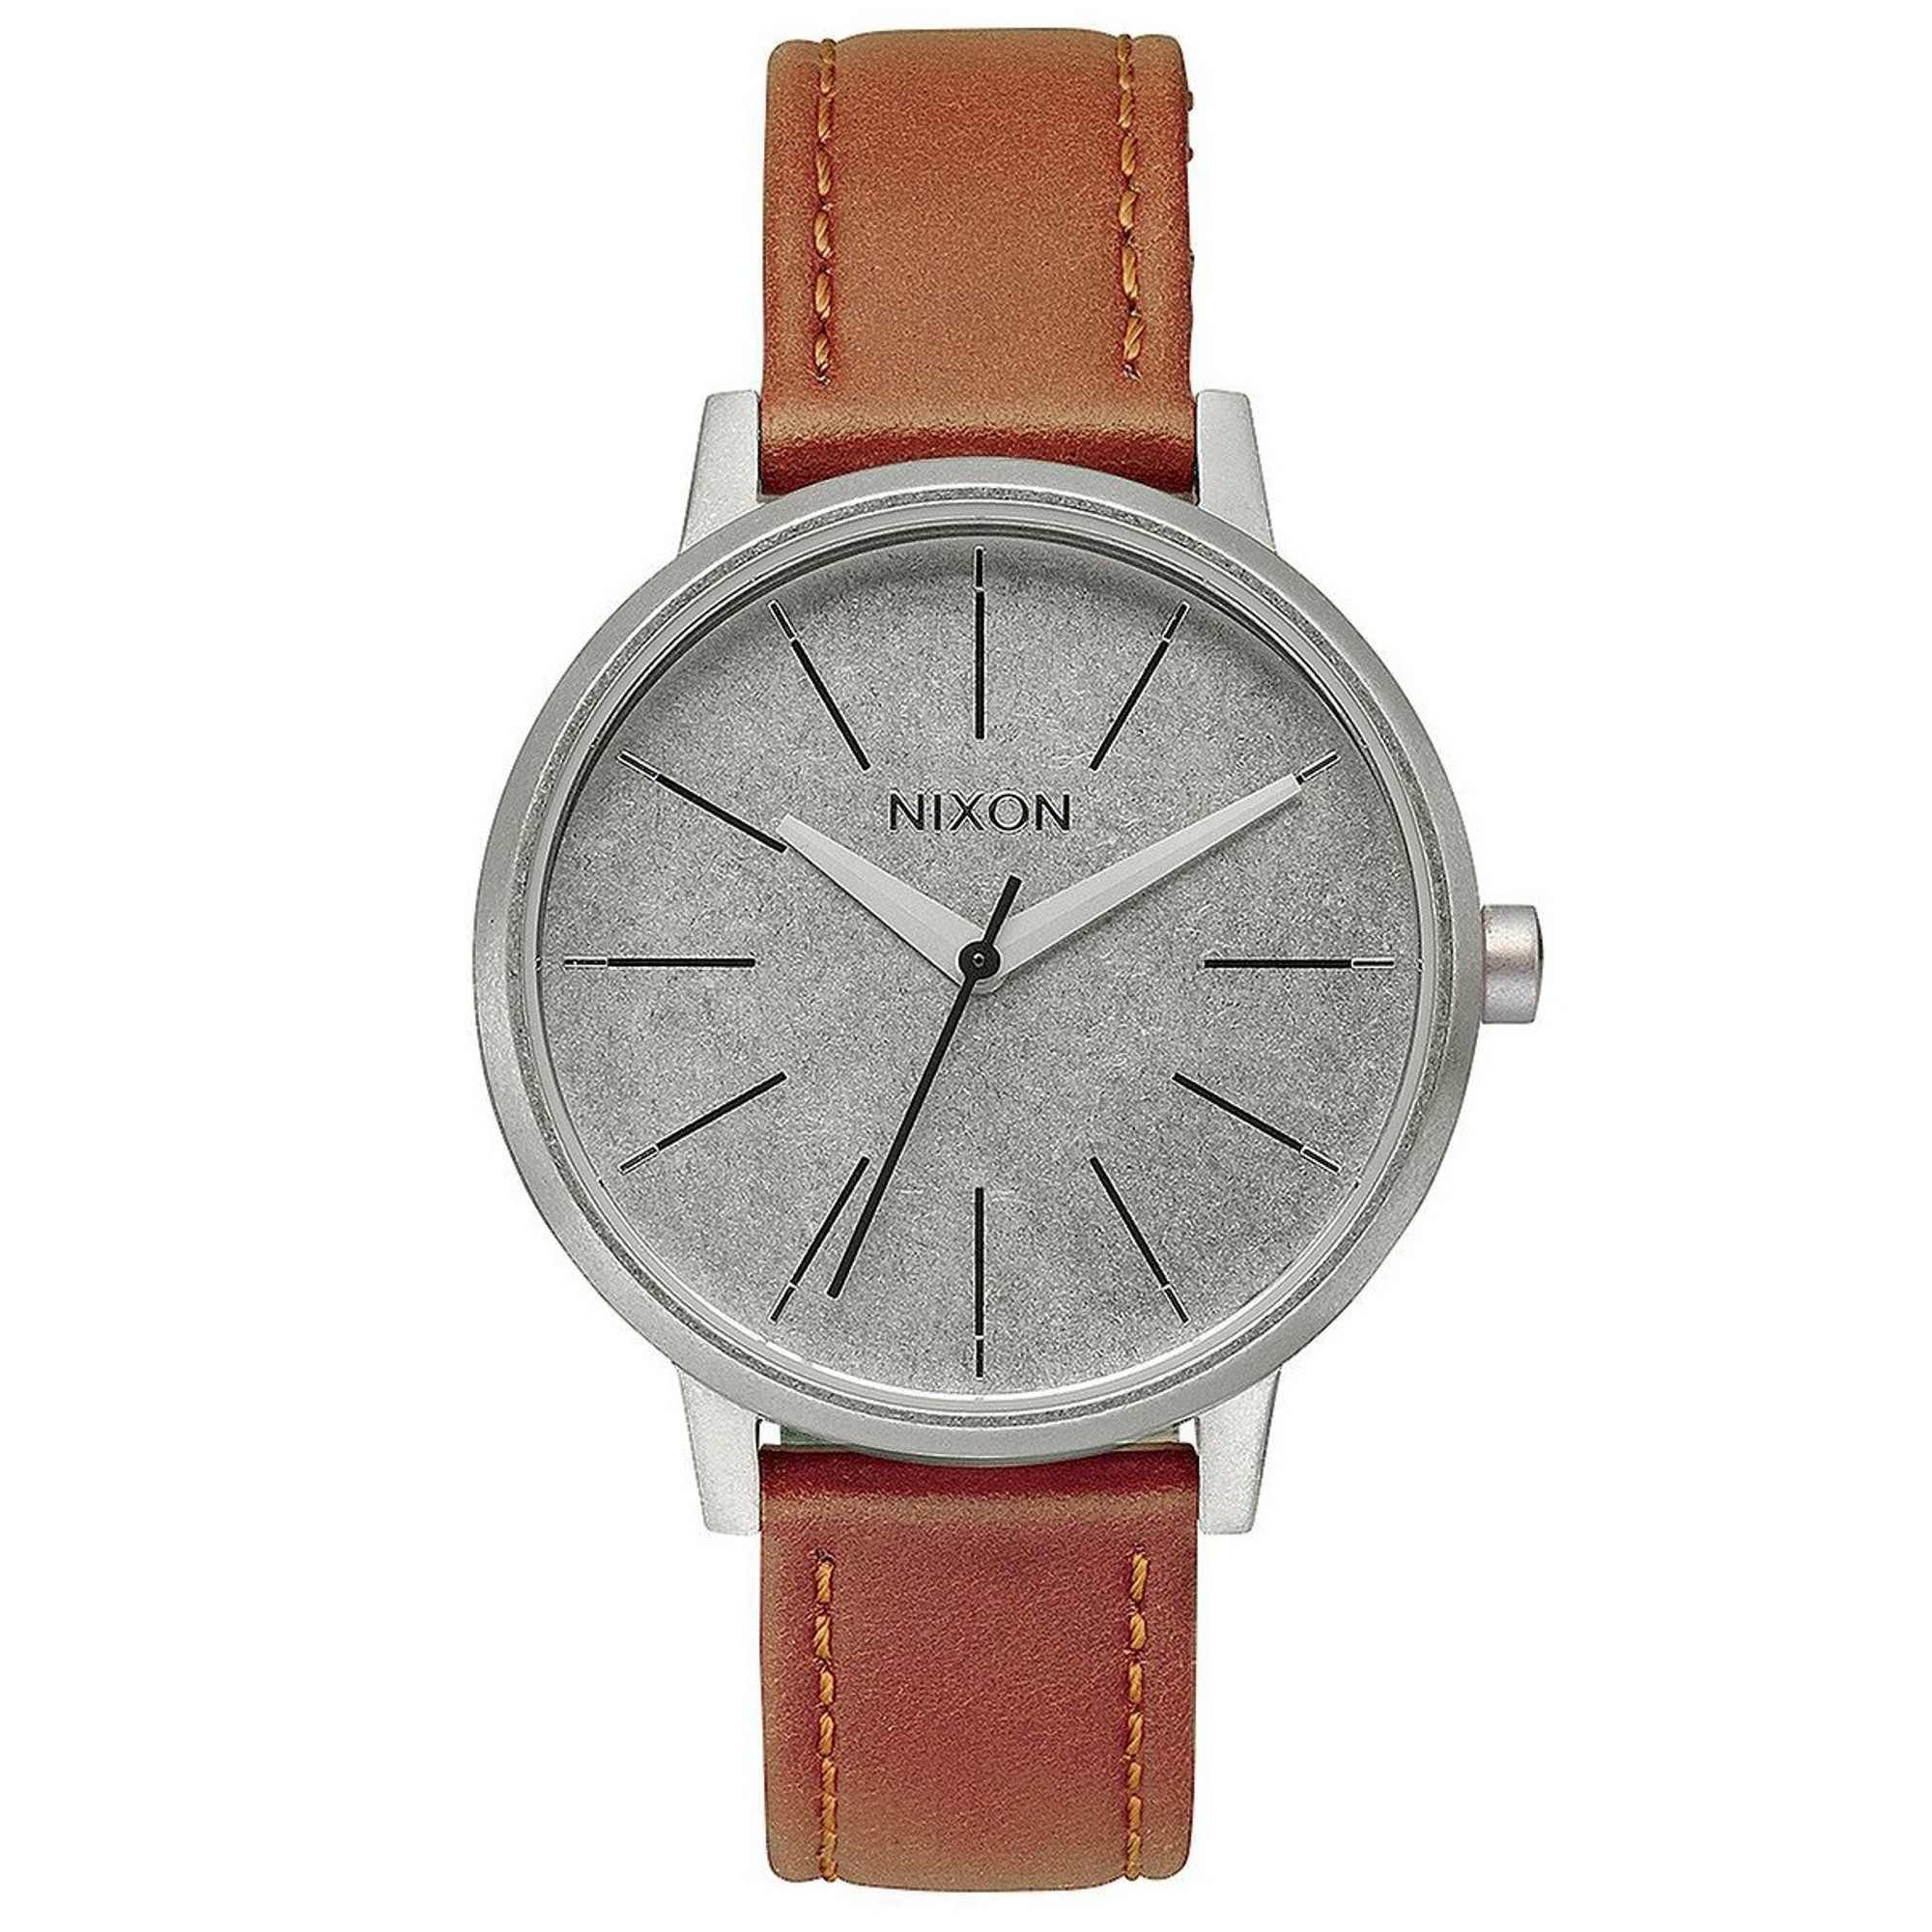 NIXON Kensington Saddle Damenuhr A108 747